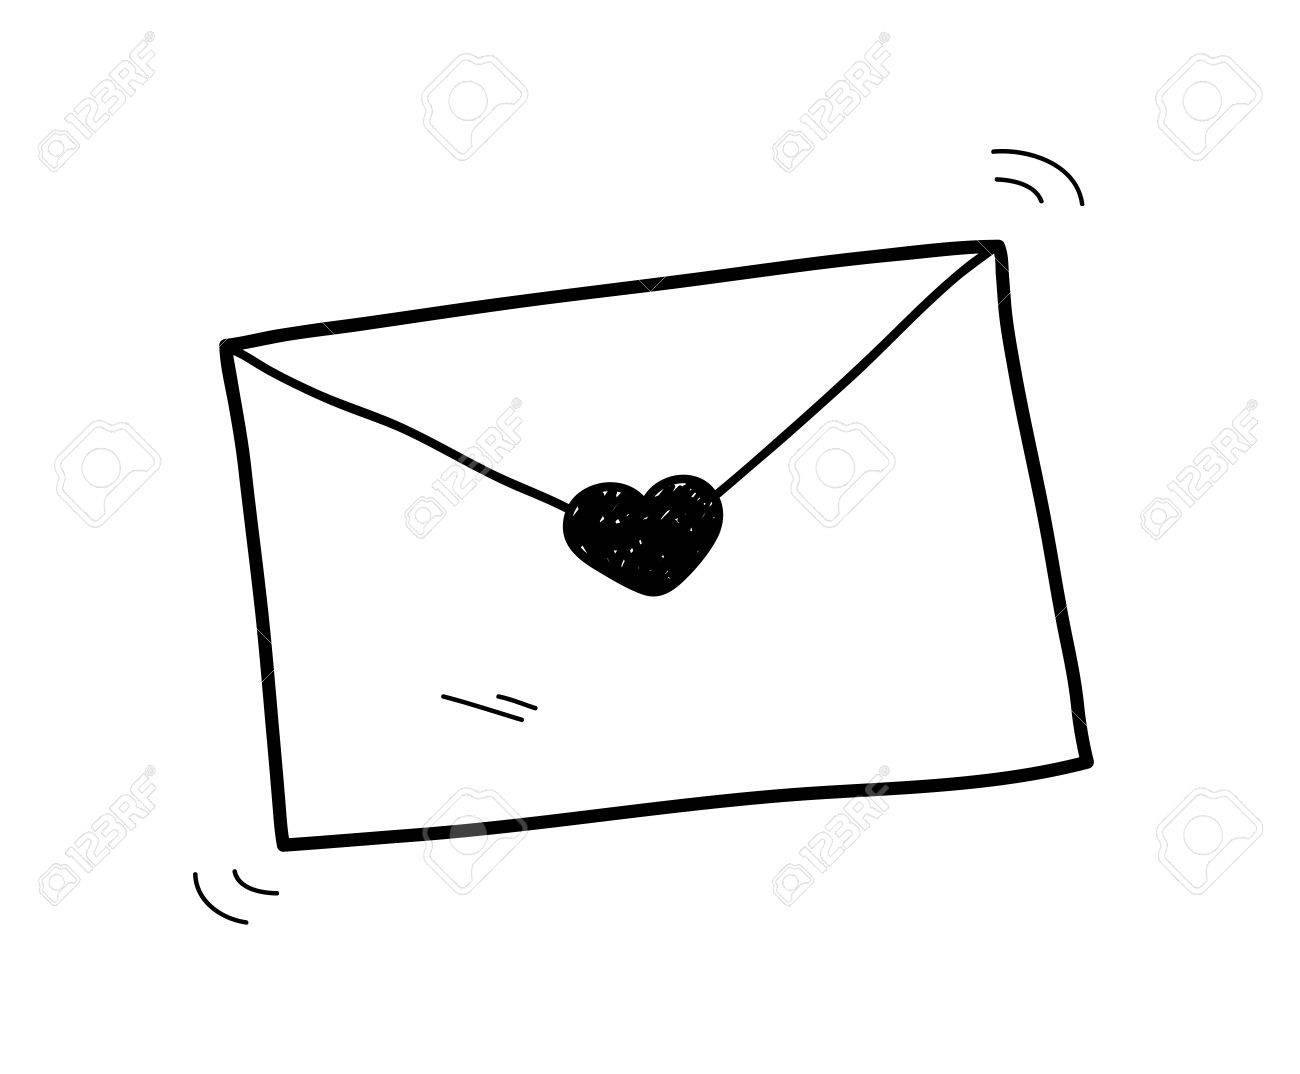 love letter doodle, a hand drawn vector doodle illustration of